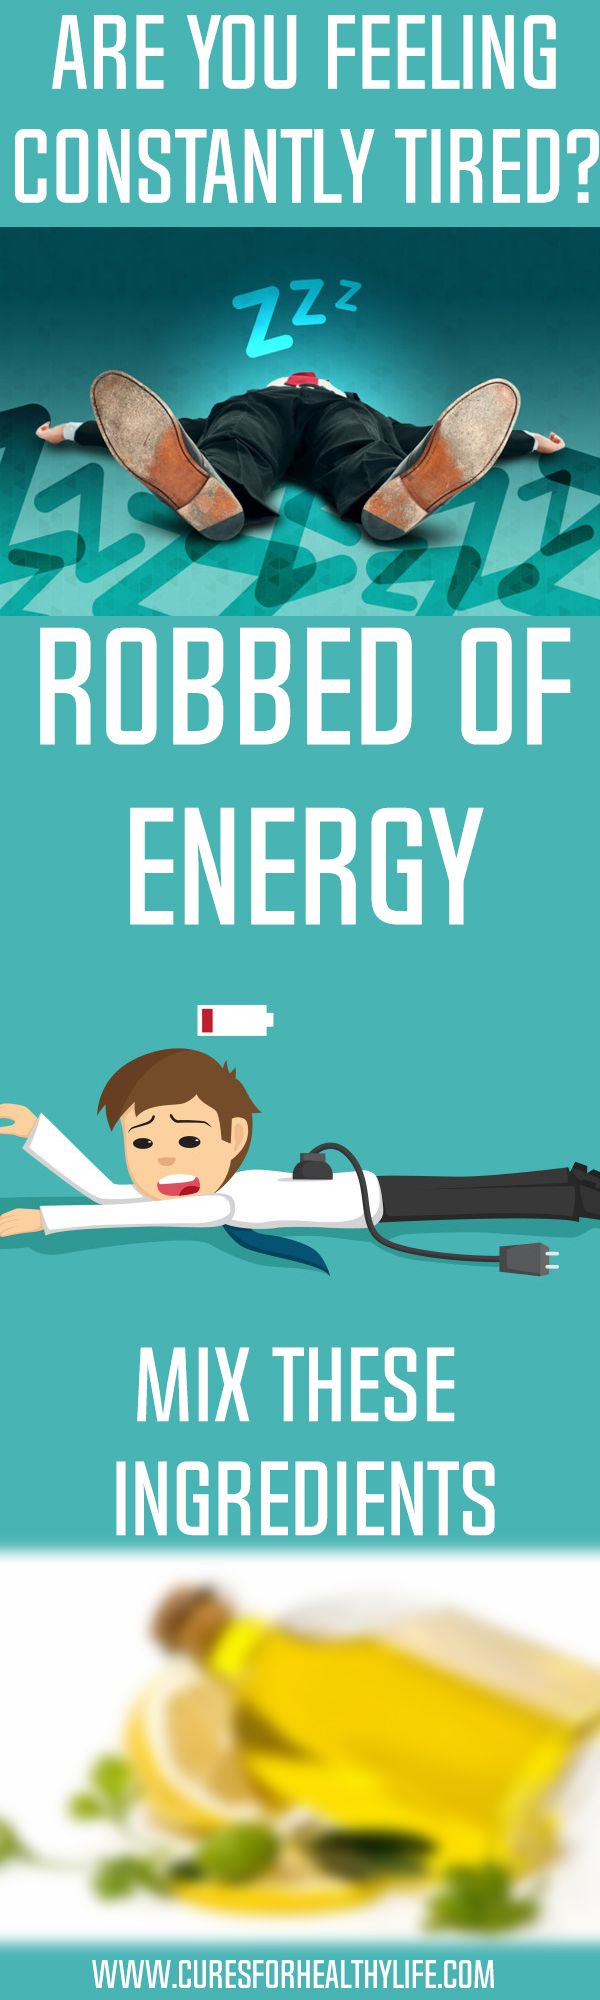 """Are you feeling constantly tired and robbed of energy? If this is the case, you should immediately do something about it. Before proceeding, you need to find what's draining your energy first. Once you identify the culprit, there's an easy way to """"recharge your batteries"""" in just a short time."""